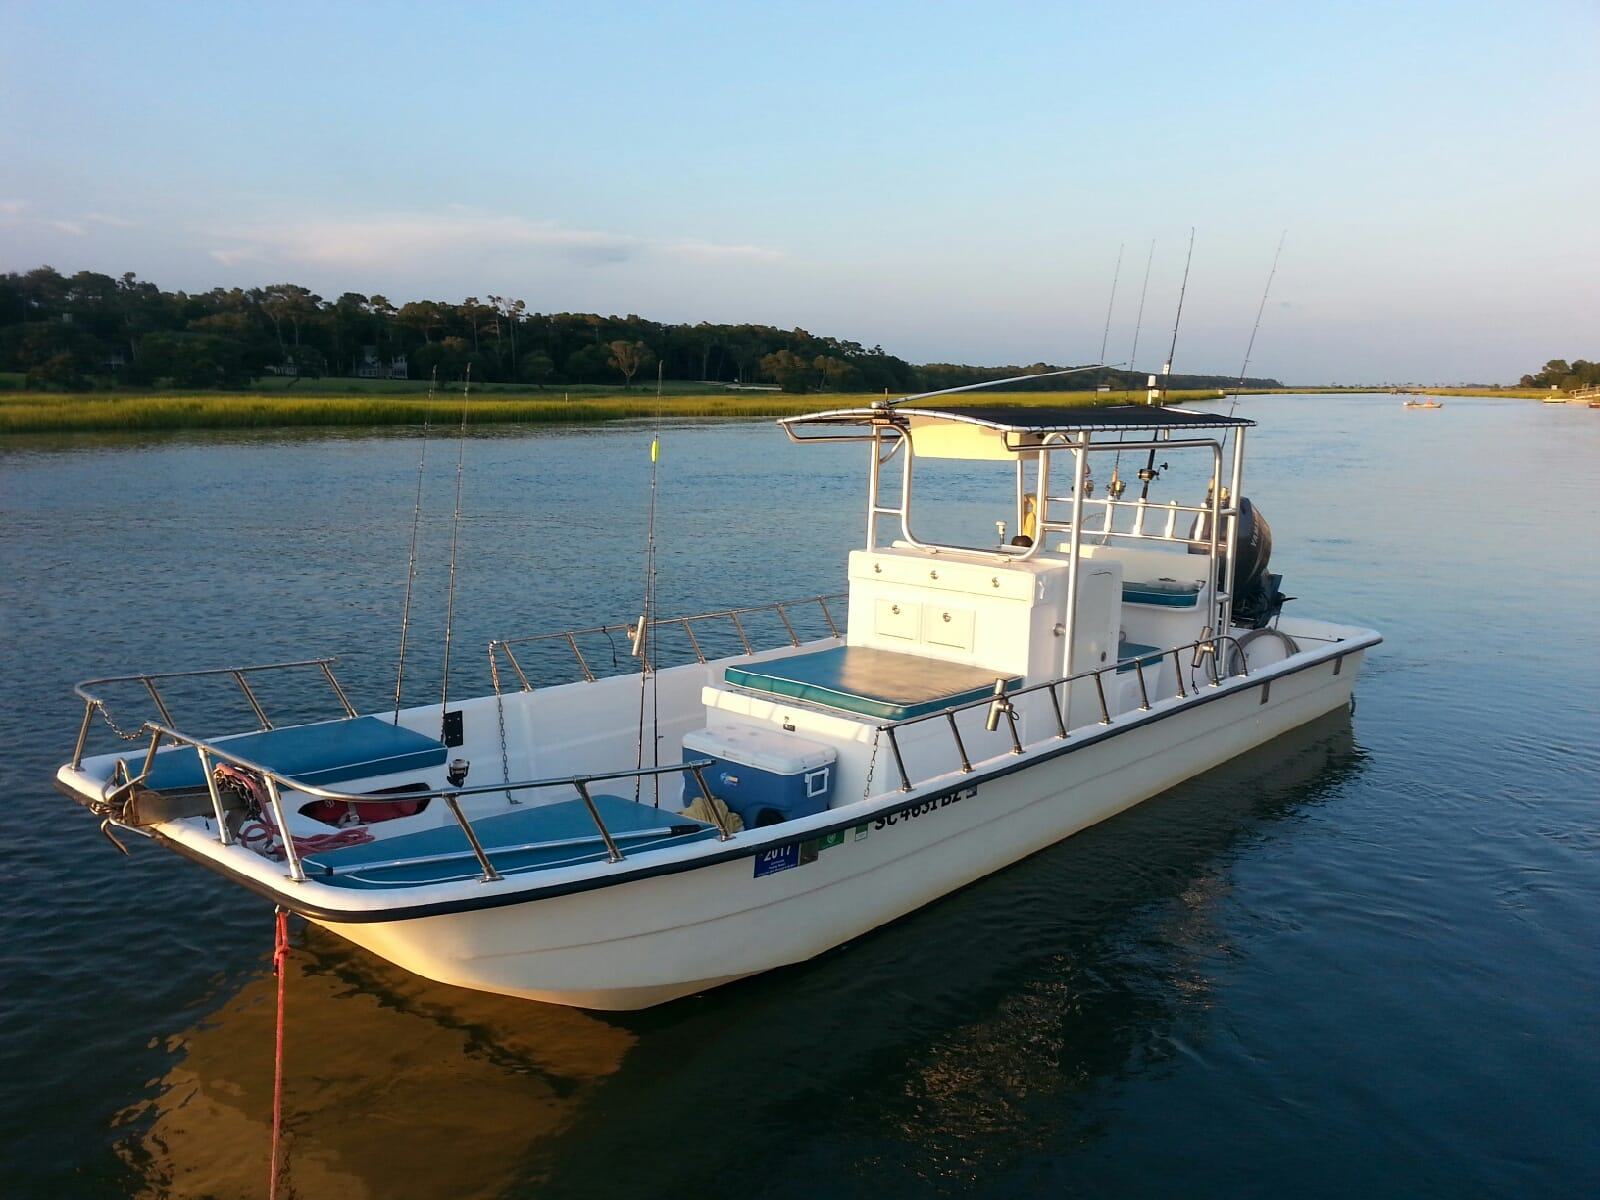 North myrtle beach fishing charters whata adventure fishing for Myrtle beach fishing charters prices